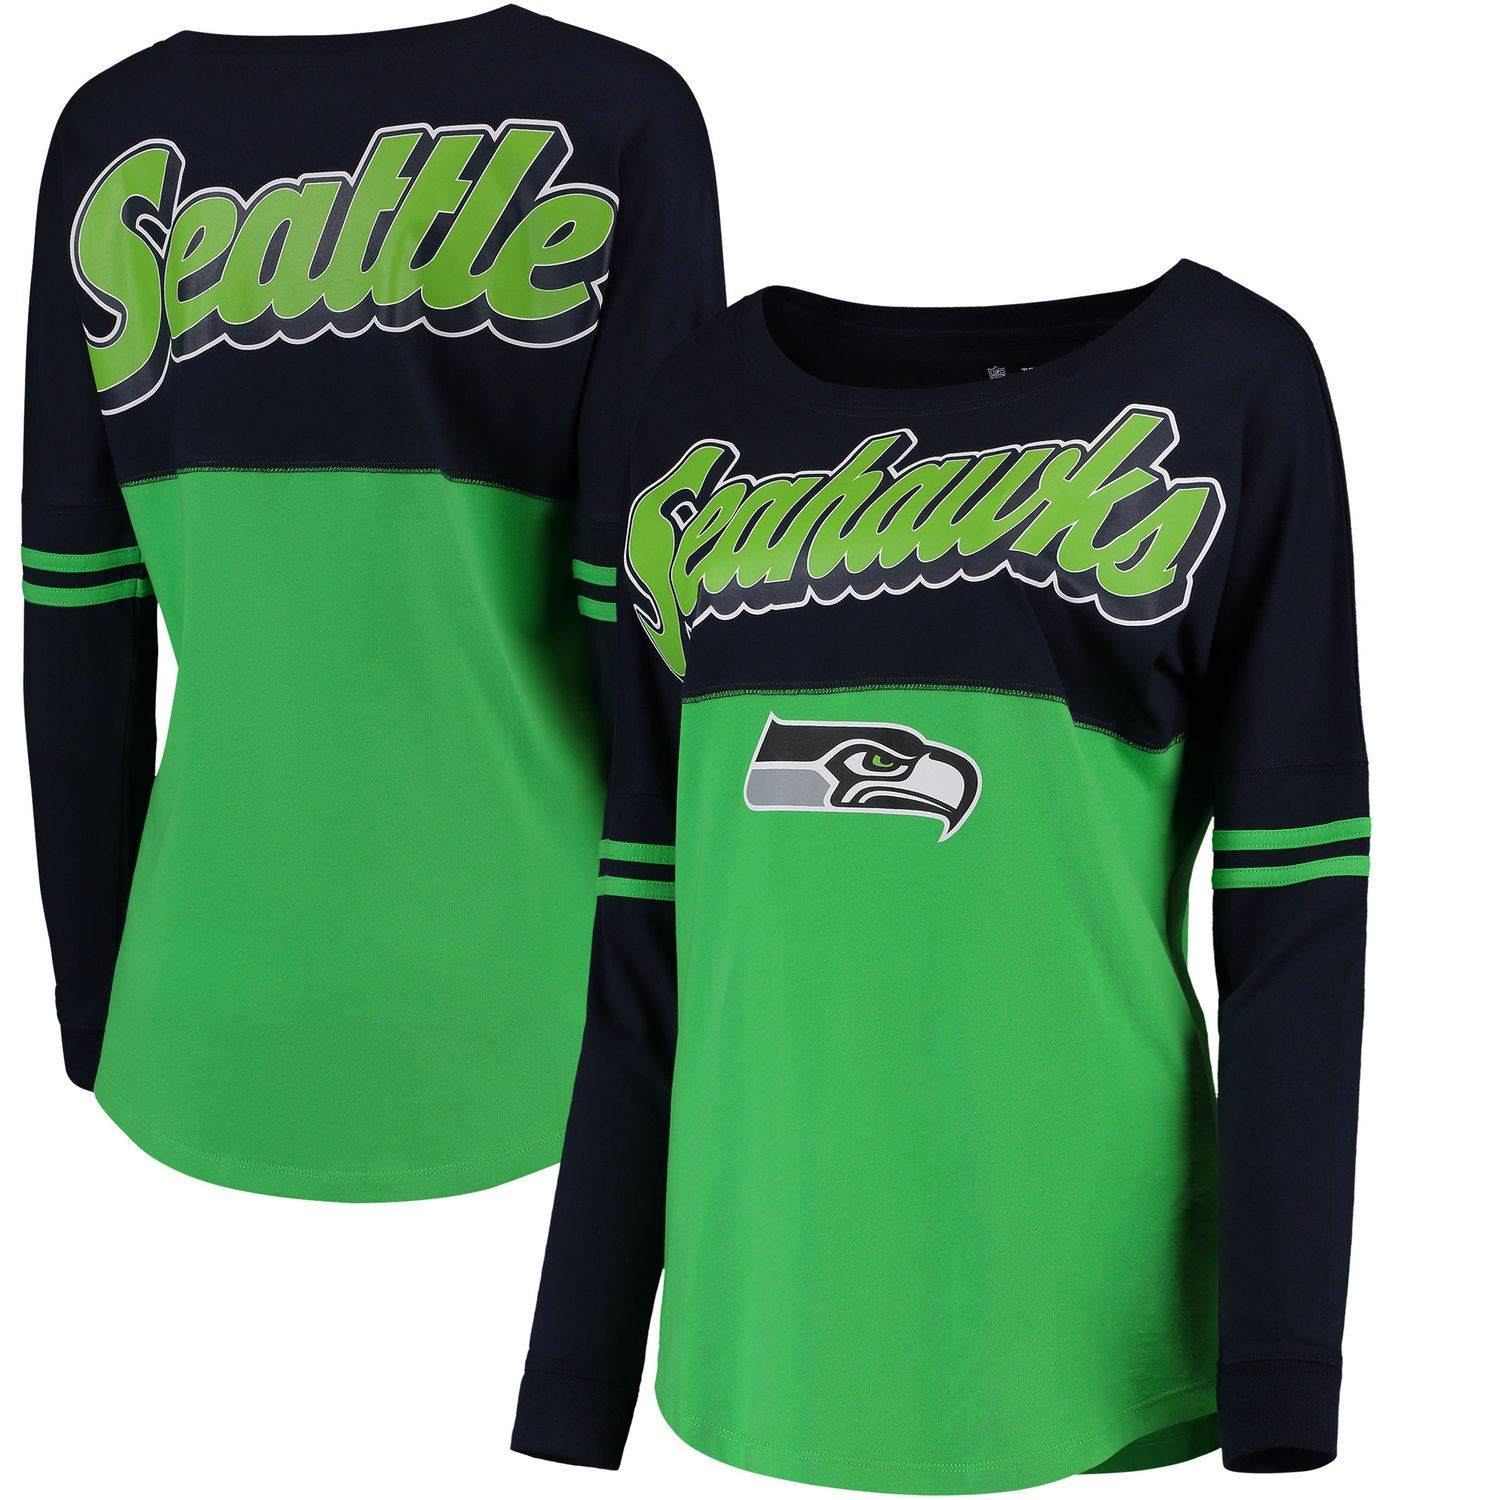 821b031111b Women s Seattle Seahawks 5th   Ocean by New Era College Navy Neon Green  Athletic Varsity Long Sleeve T-Shirt